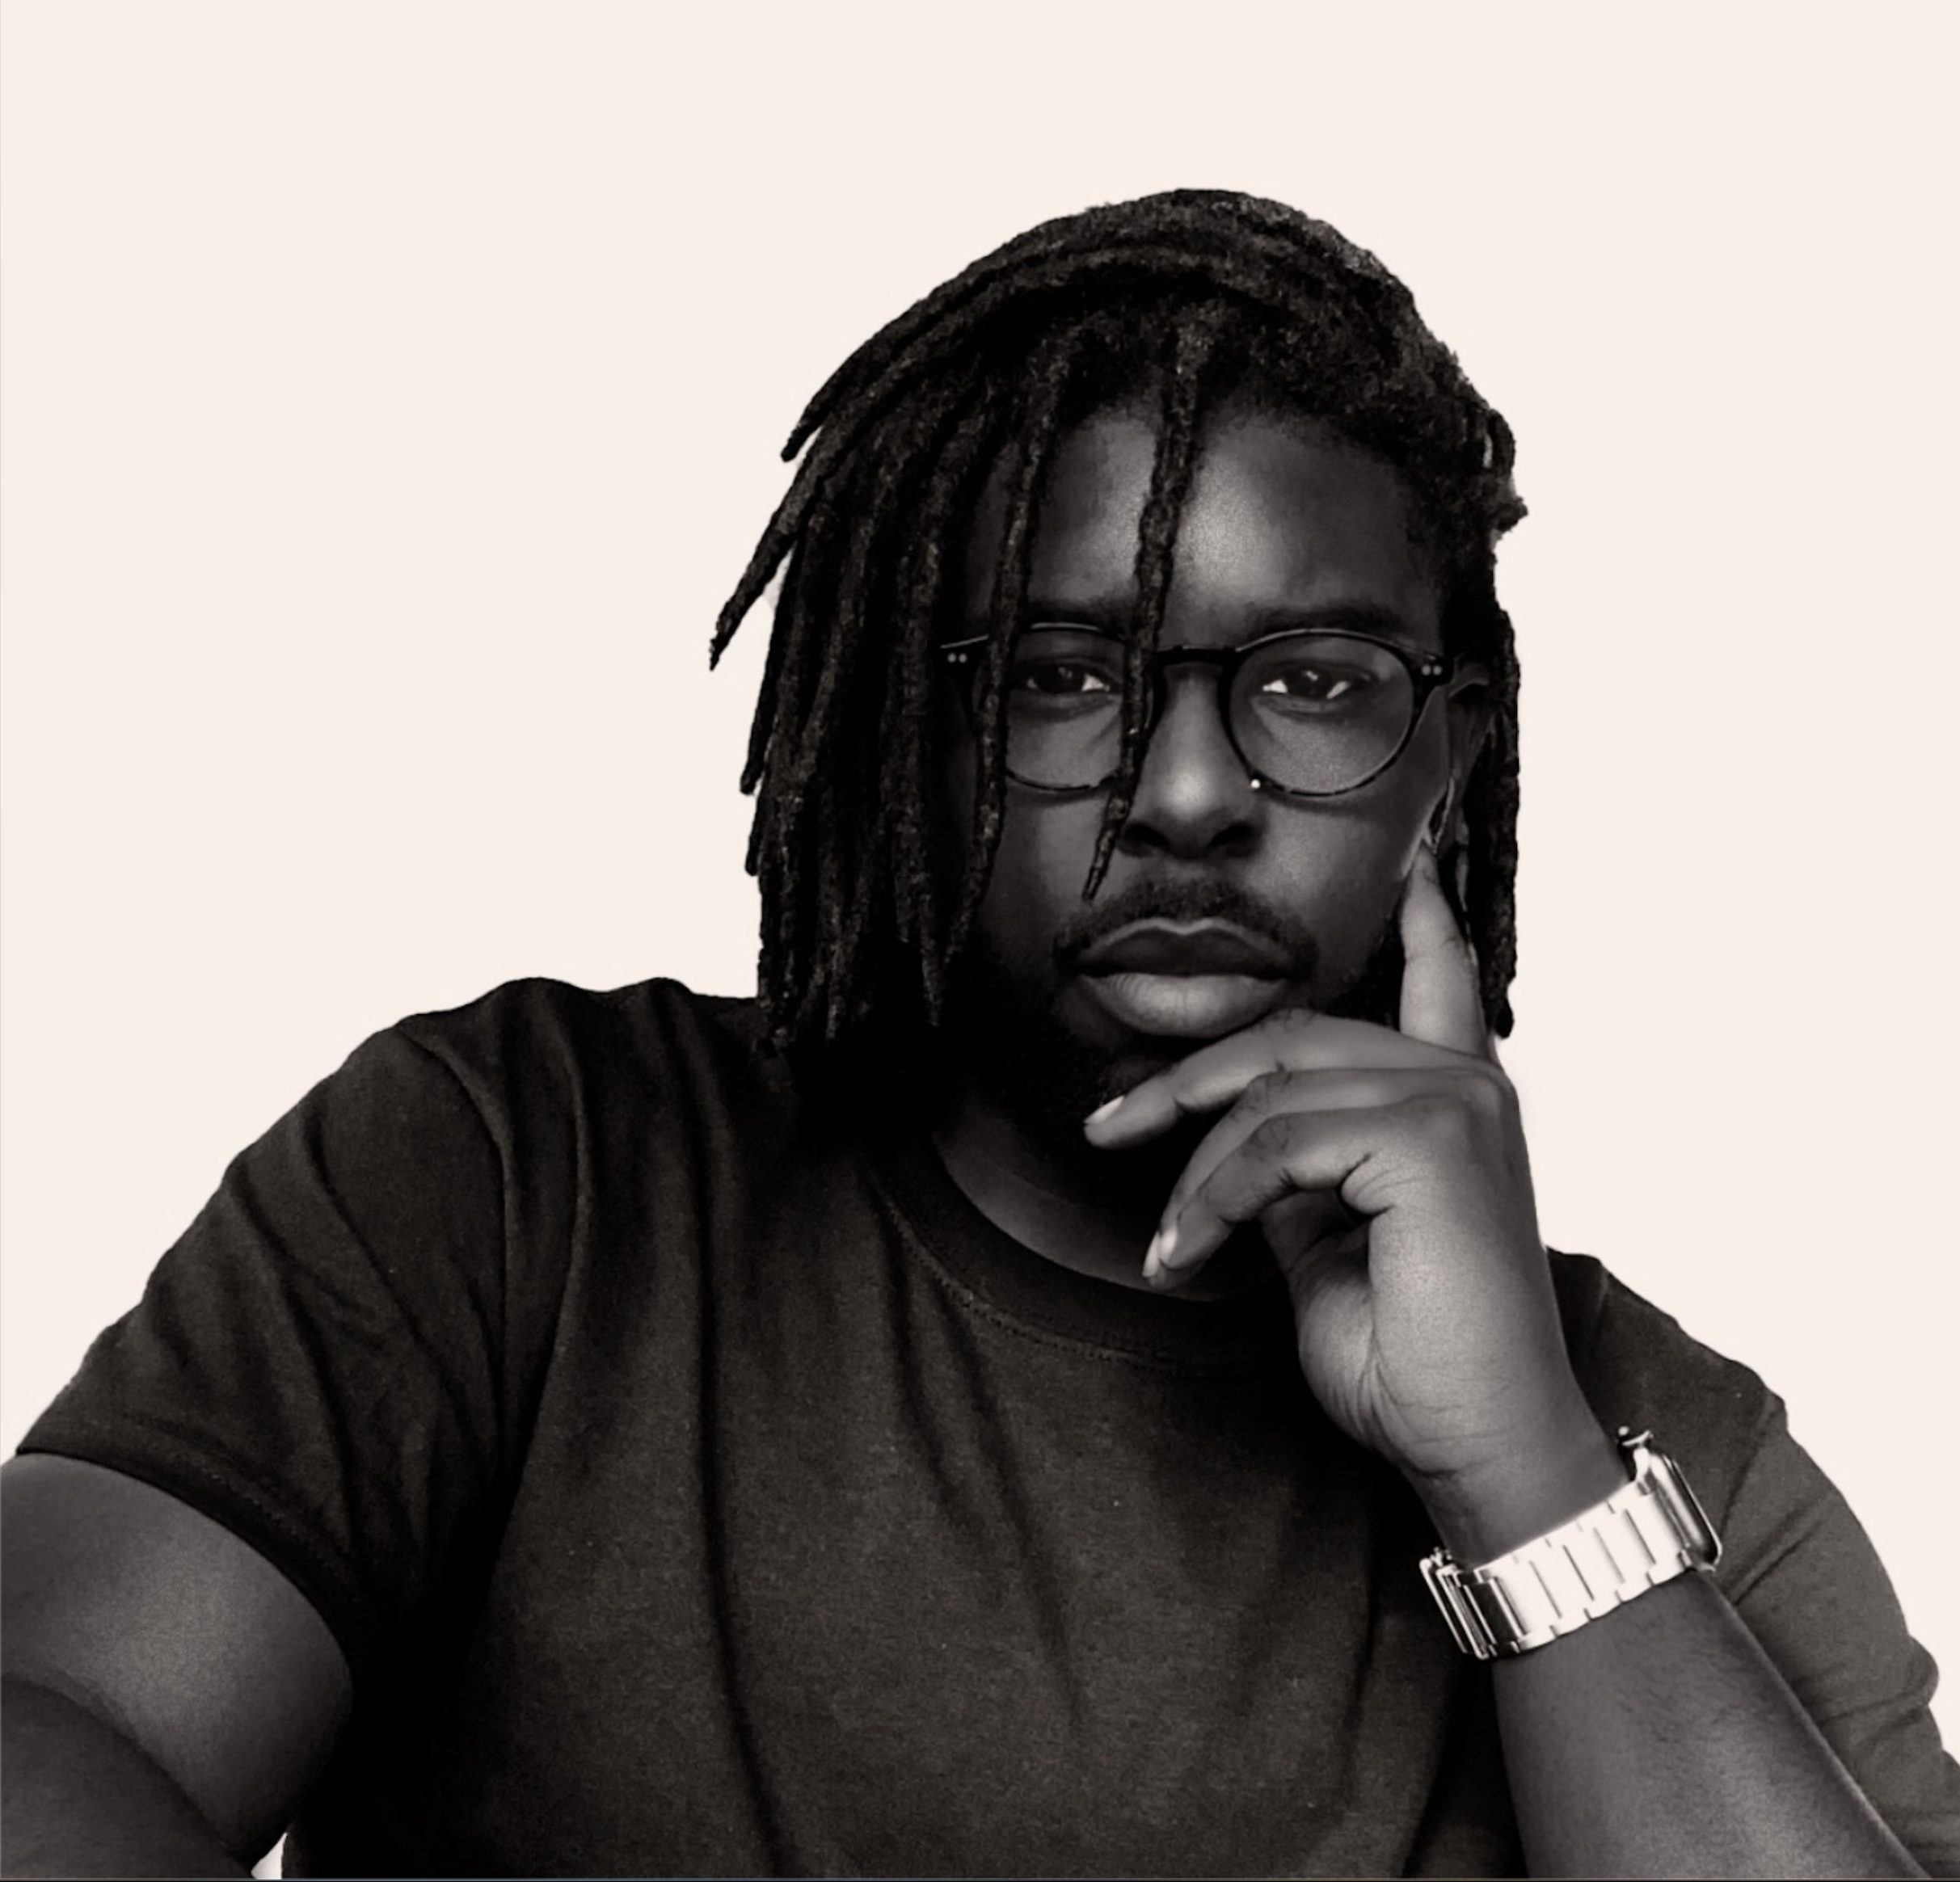 Pictured is Brandon Morayo sitting against a white background. He is shown from the chest up, leaning his right hand. He has dark skin and medium length dreadlocks. He is wearing a dark t-shirt, watch, and dark frame eyeglasses.